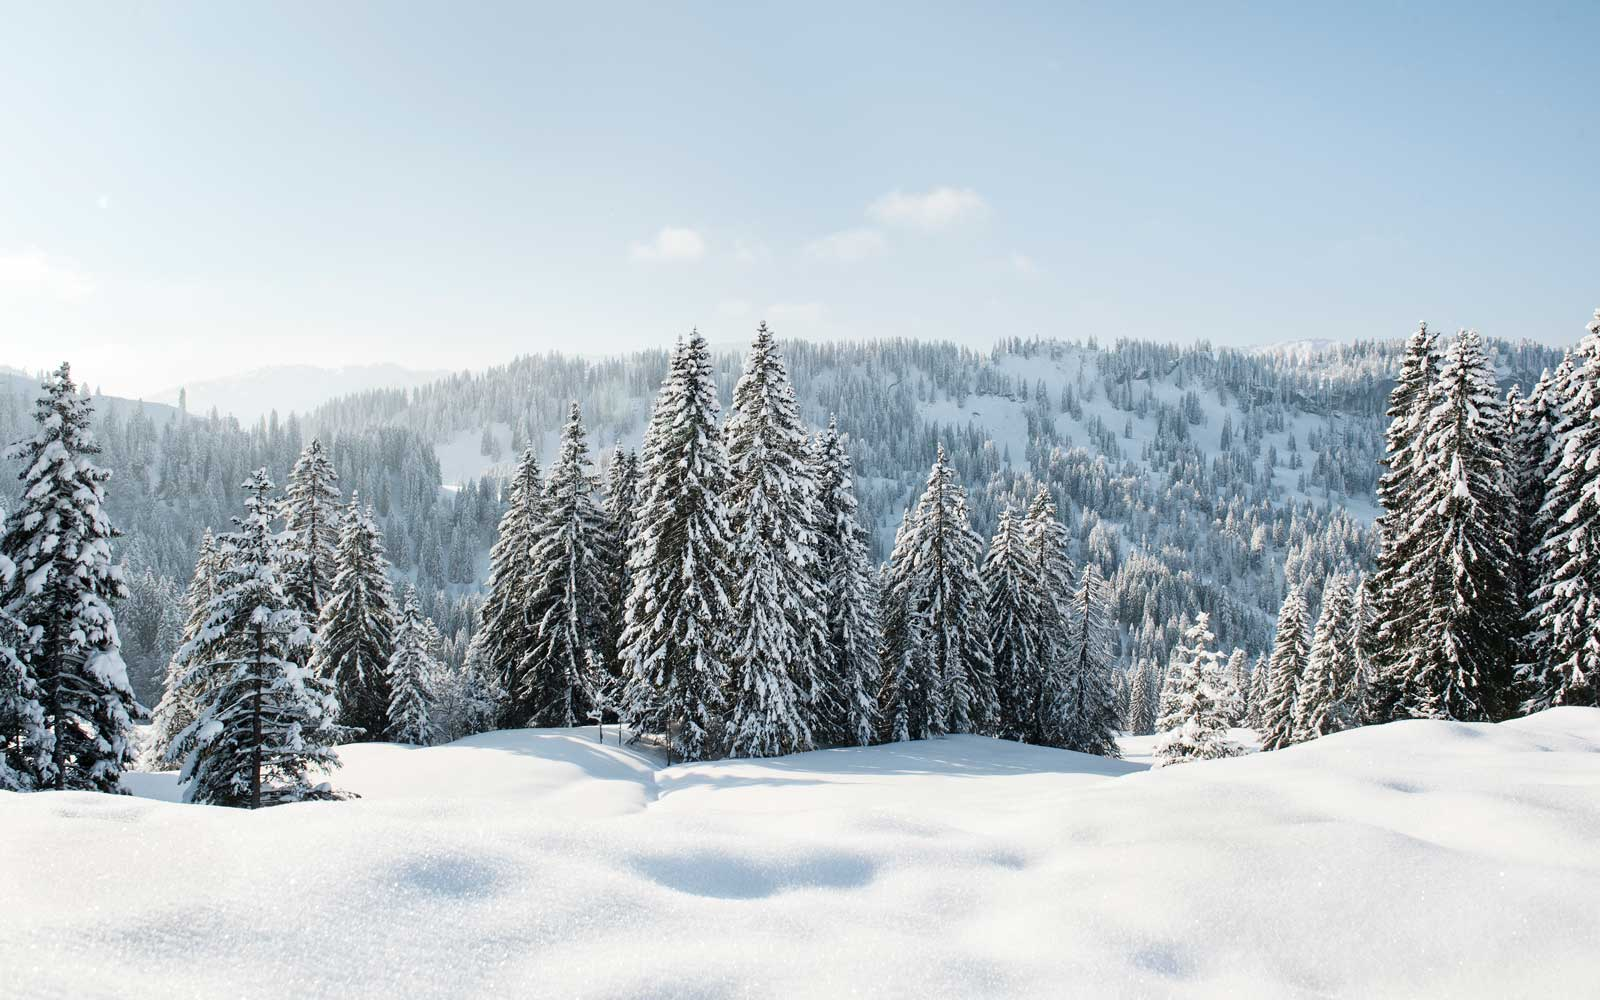 A sunny winter forest scene in Germany